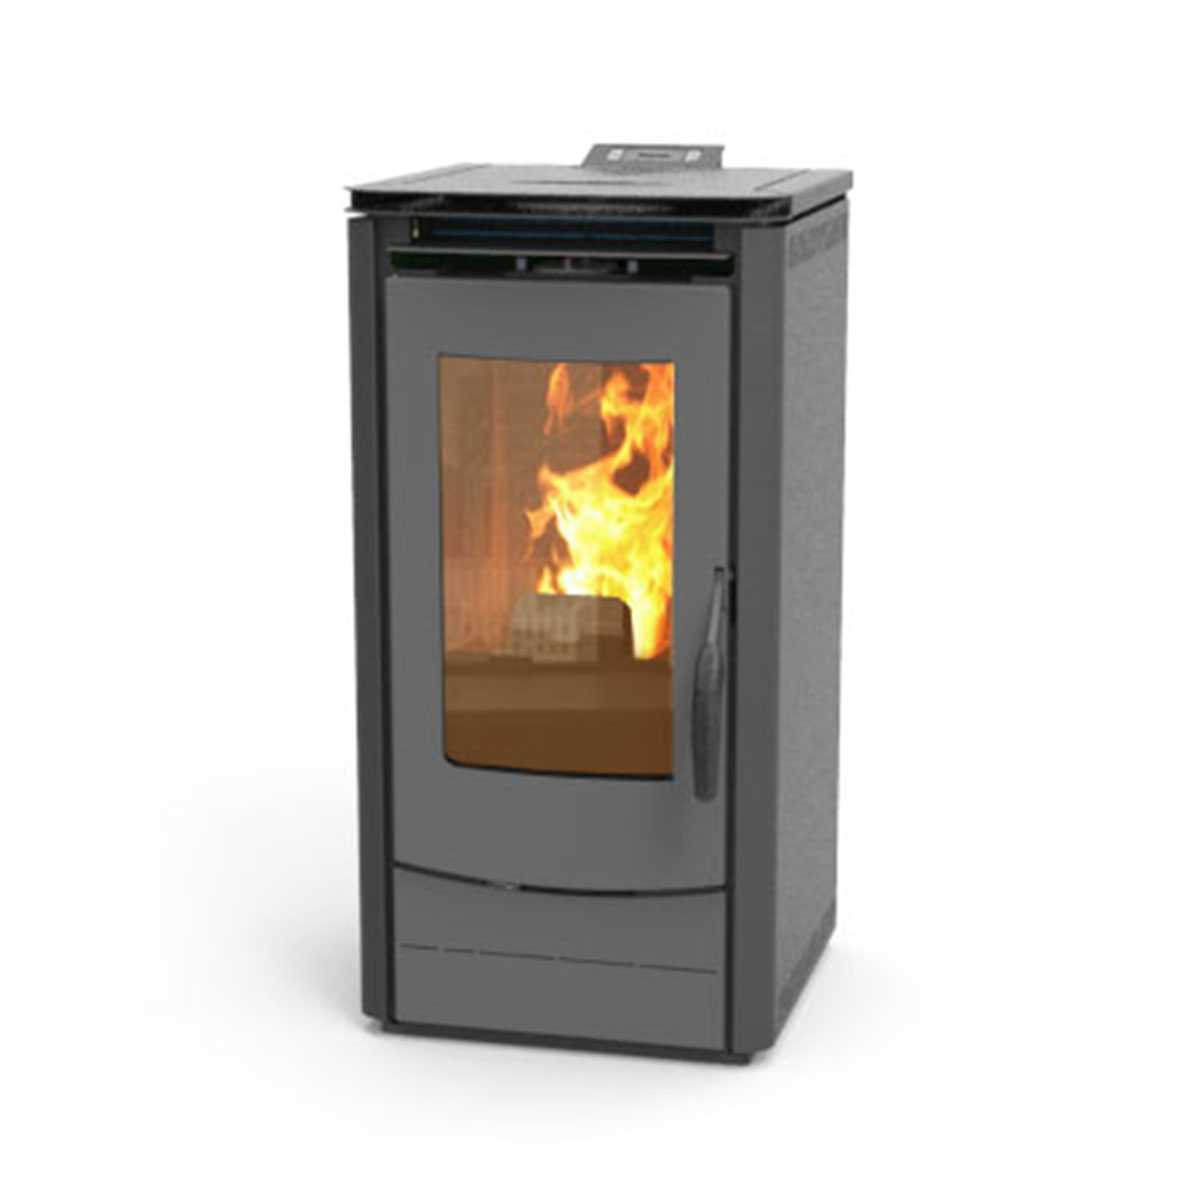 Stufa a pellet grigio antracite Thermossi 1000 Easy da 7,5 kW classe A+